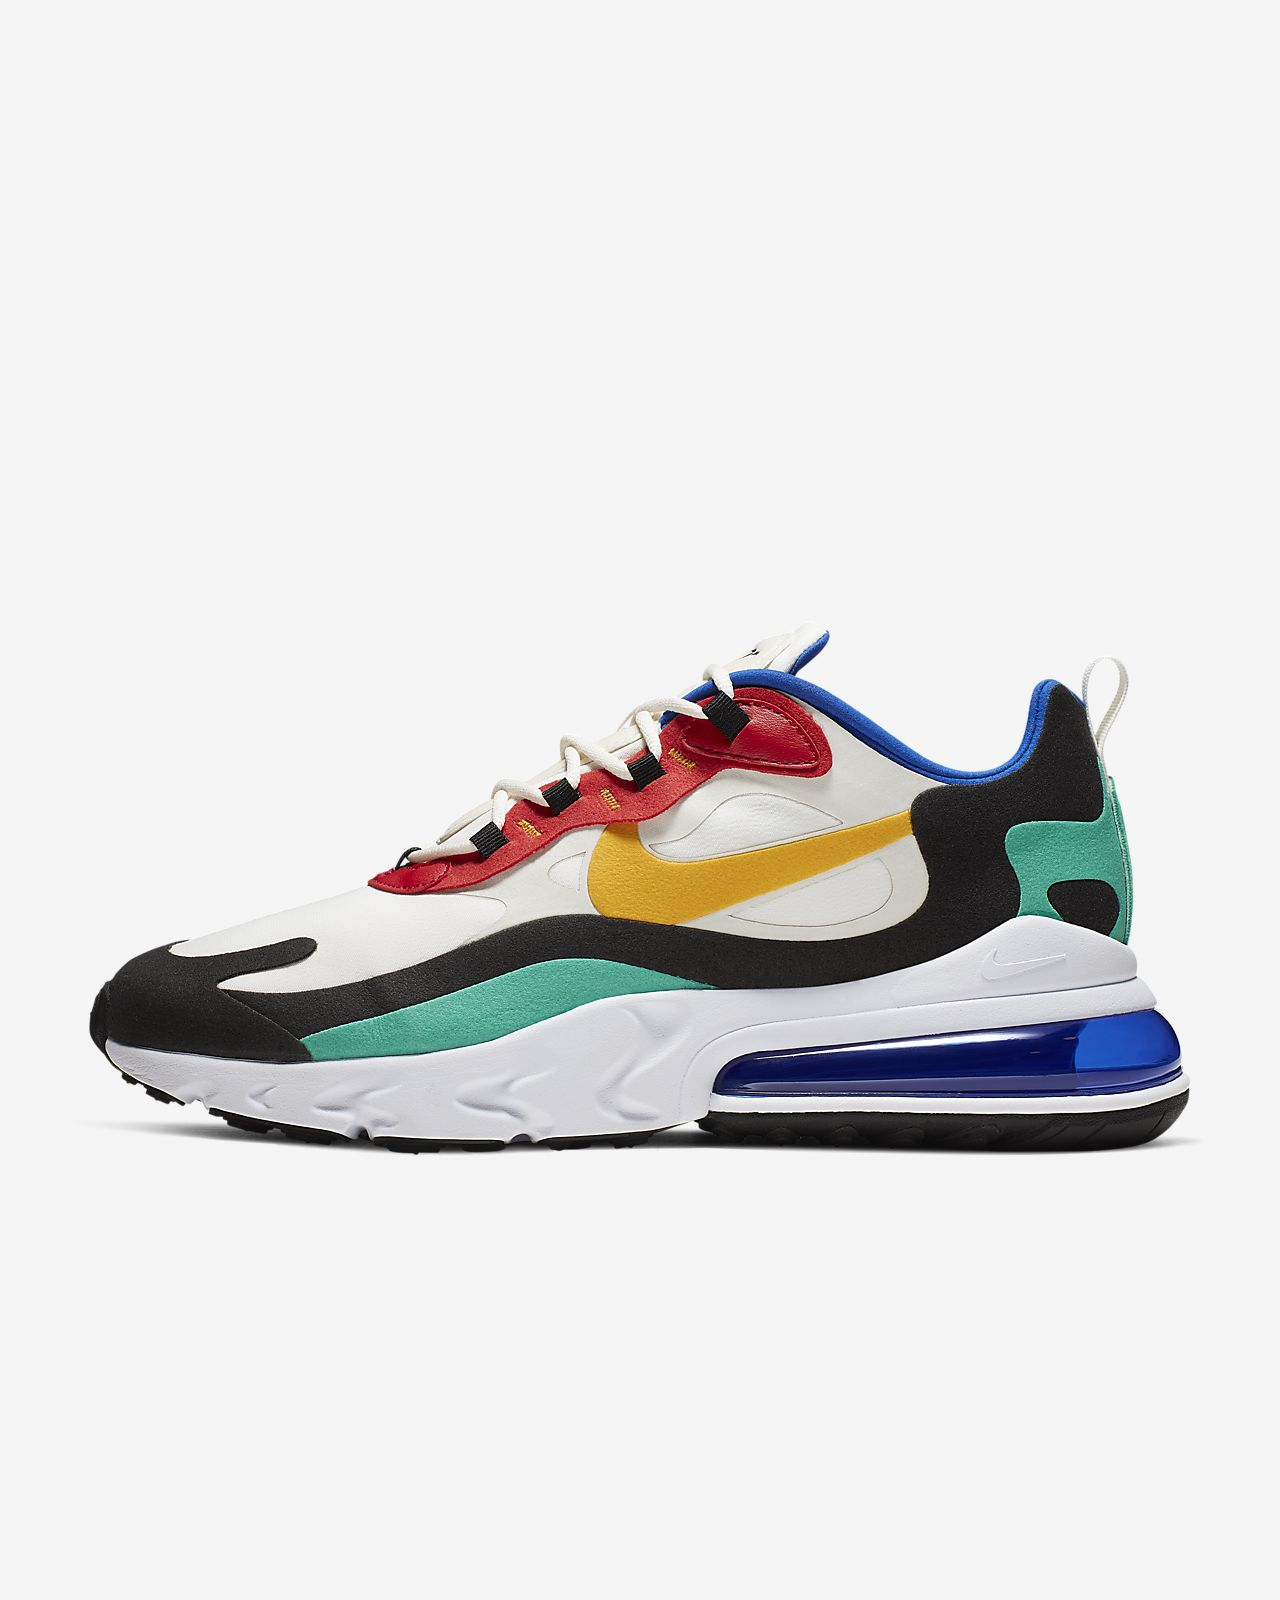 Air Max 96 Ii Xx , chaussure basketball homme,nike basket